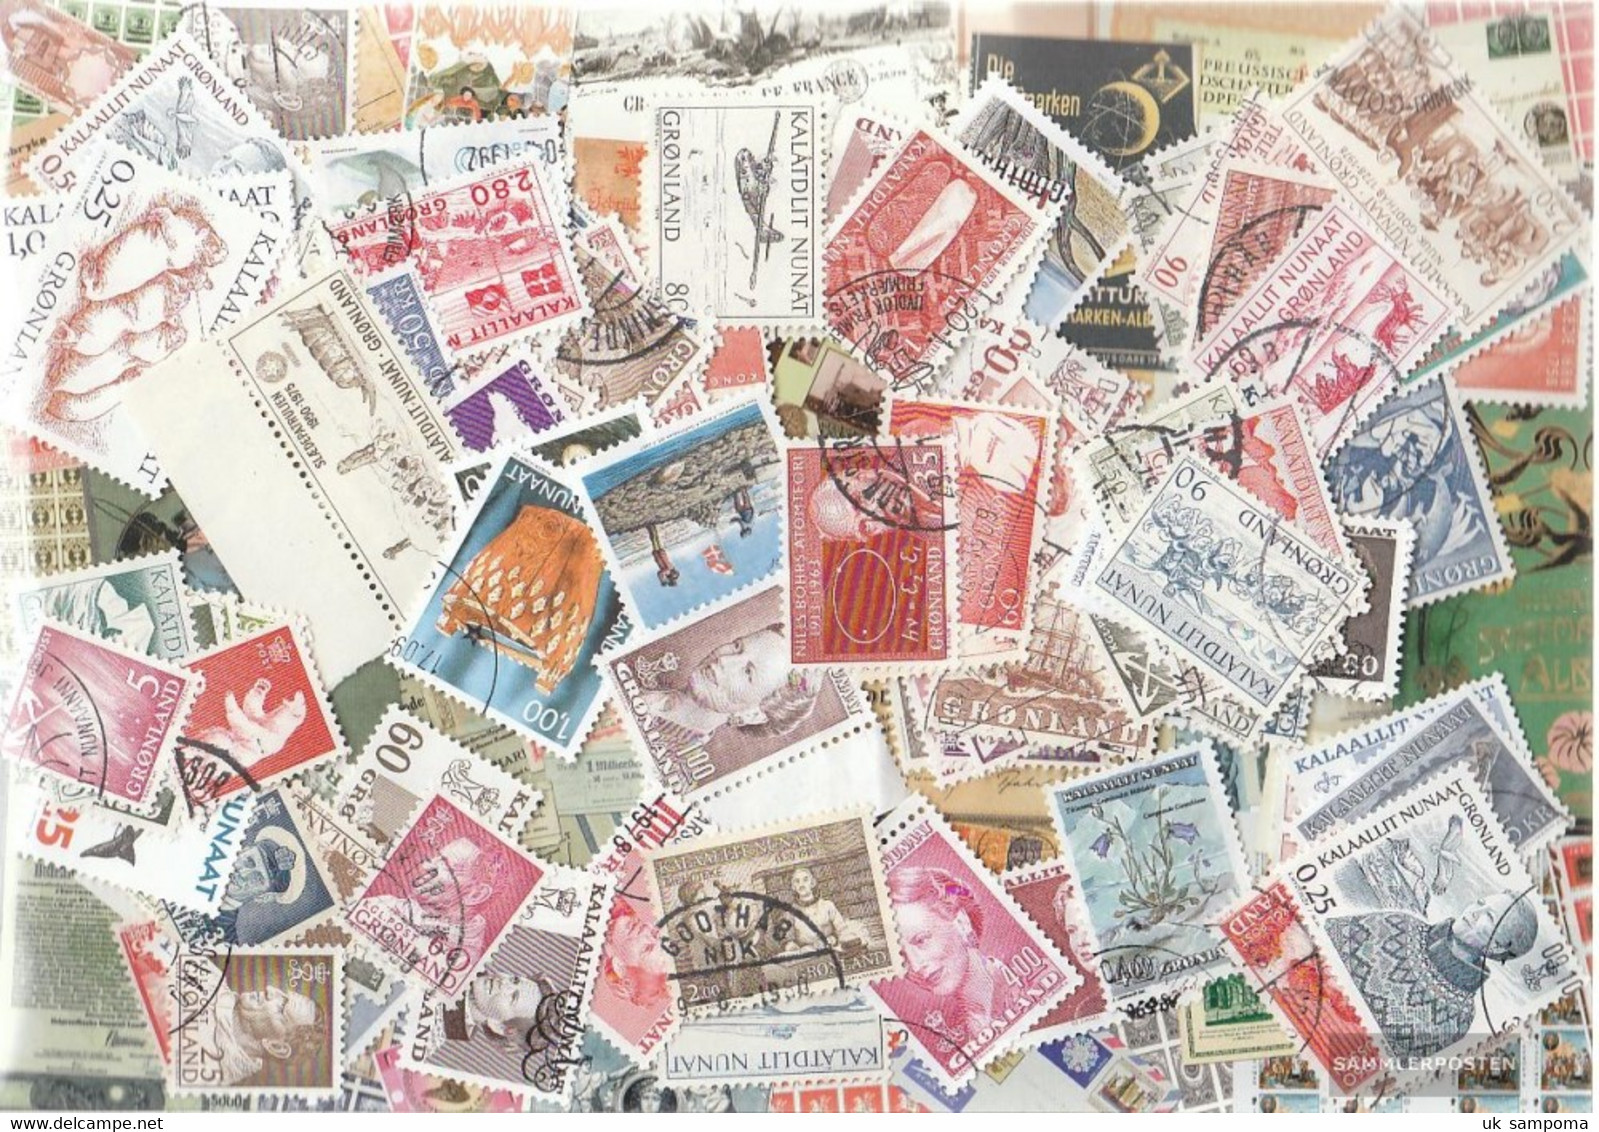 Denmark - Greenland 400 Different Stamps - Collections, Lots & Series